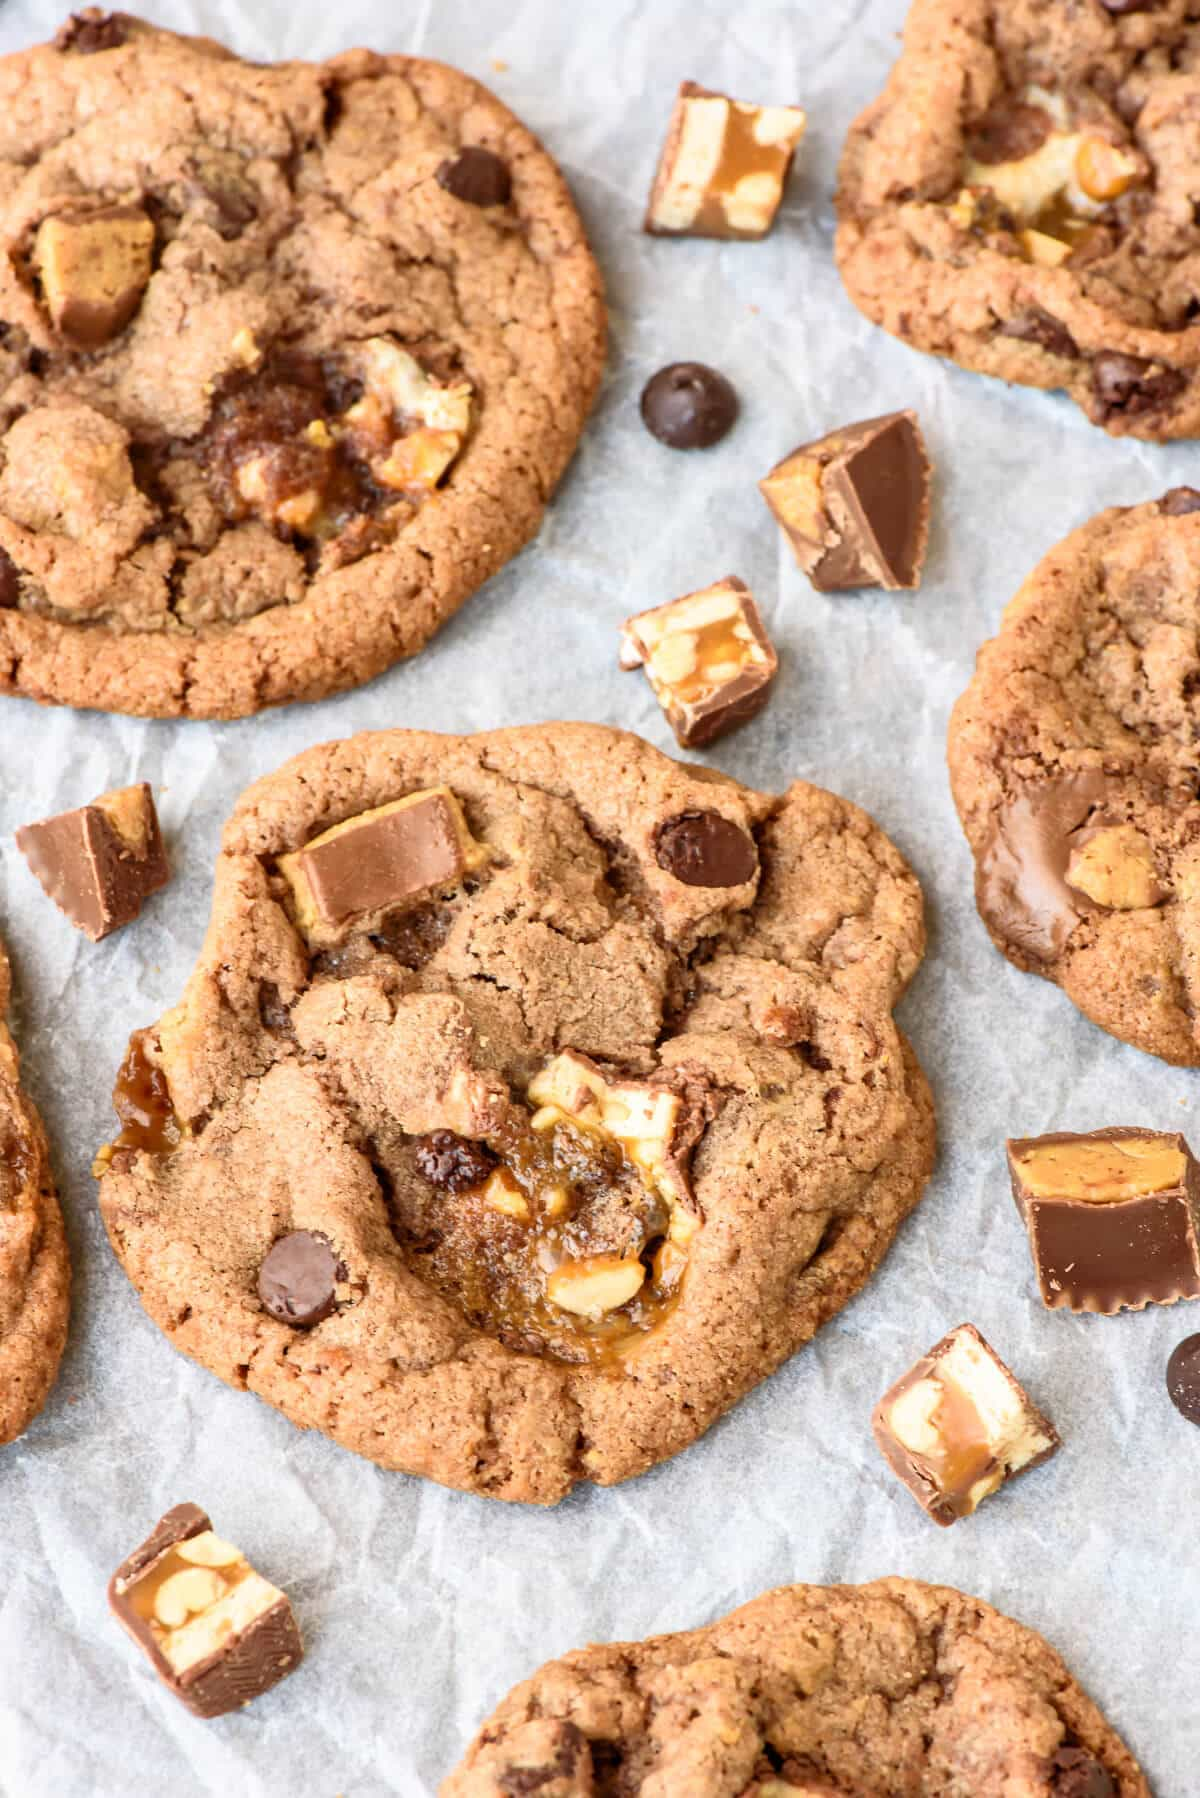 Soft and Chewy Peanut Butter Snickers Cookies. These are the BEST cookies. Caramel, chocolate, and peanut butter, baked into a soft chewy cookie. What's not to love?